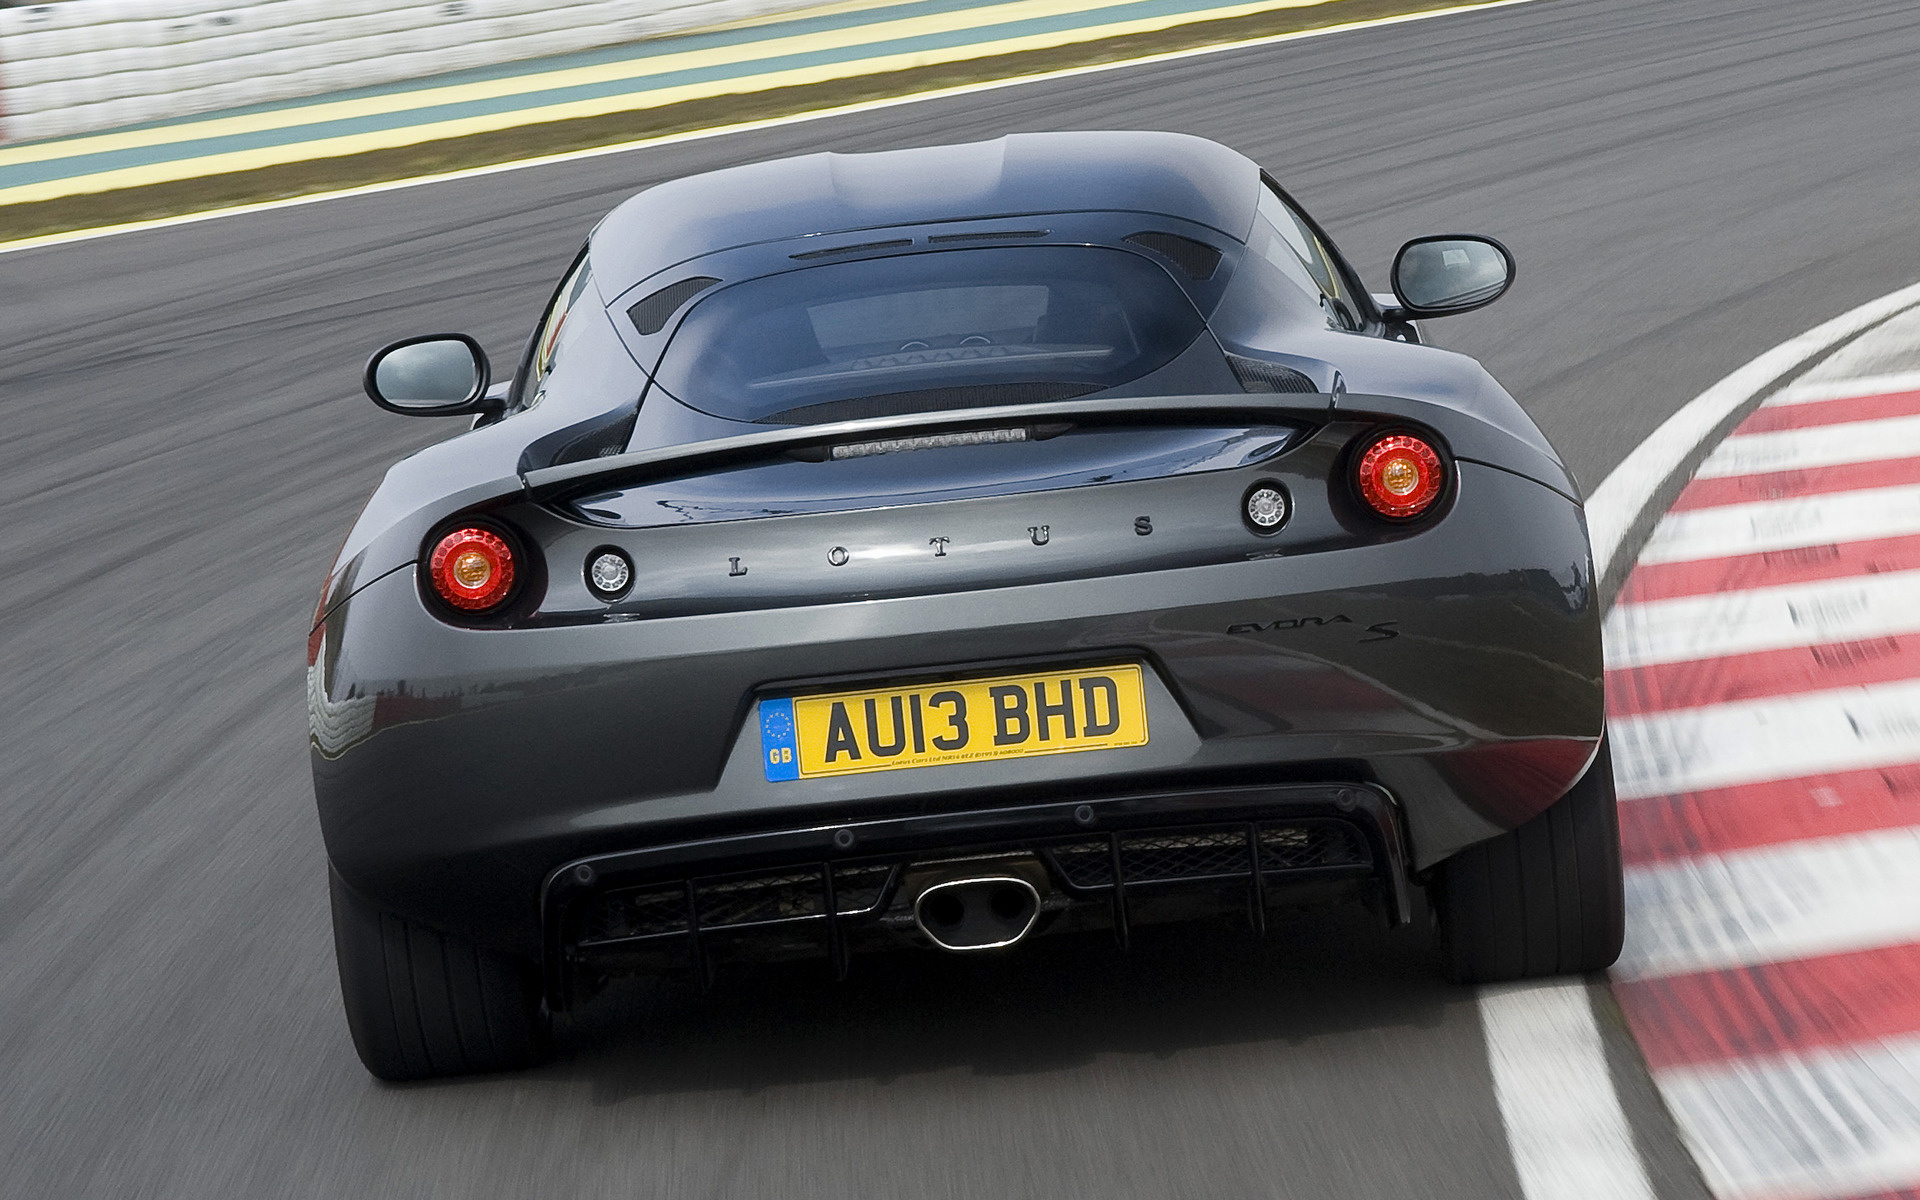 https://www.carpixel.net/w/d6d3dc505f7bdefae0cfd4d34848af50/lotus-evora-s-sports-racer-car-wallpaper-41992.jpg